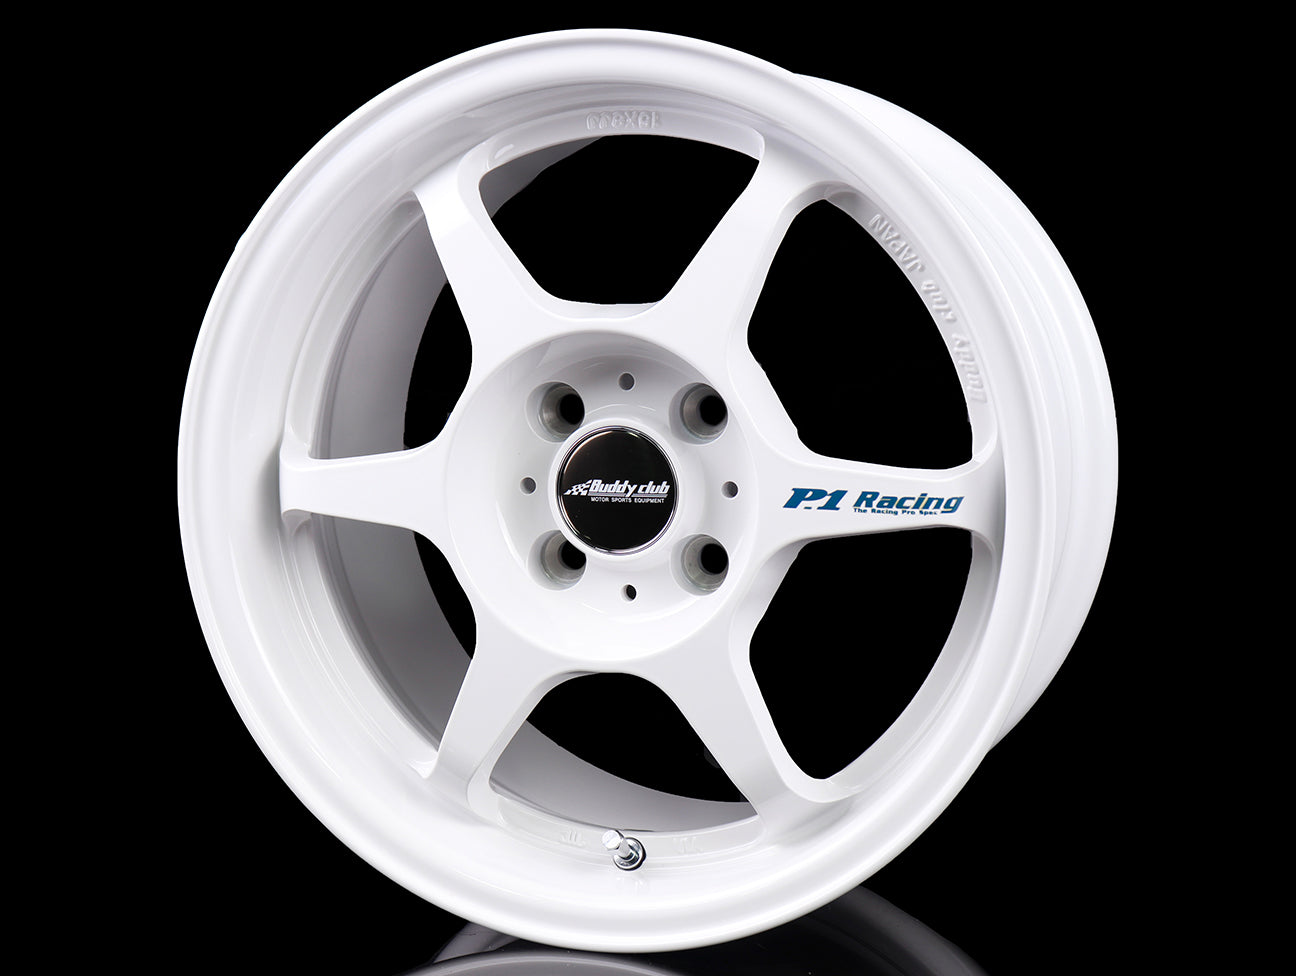 Buddy Club SF Wheels - Champ White 15x8 / 5x114 / +32